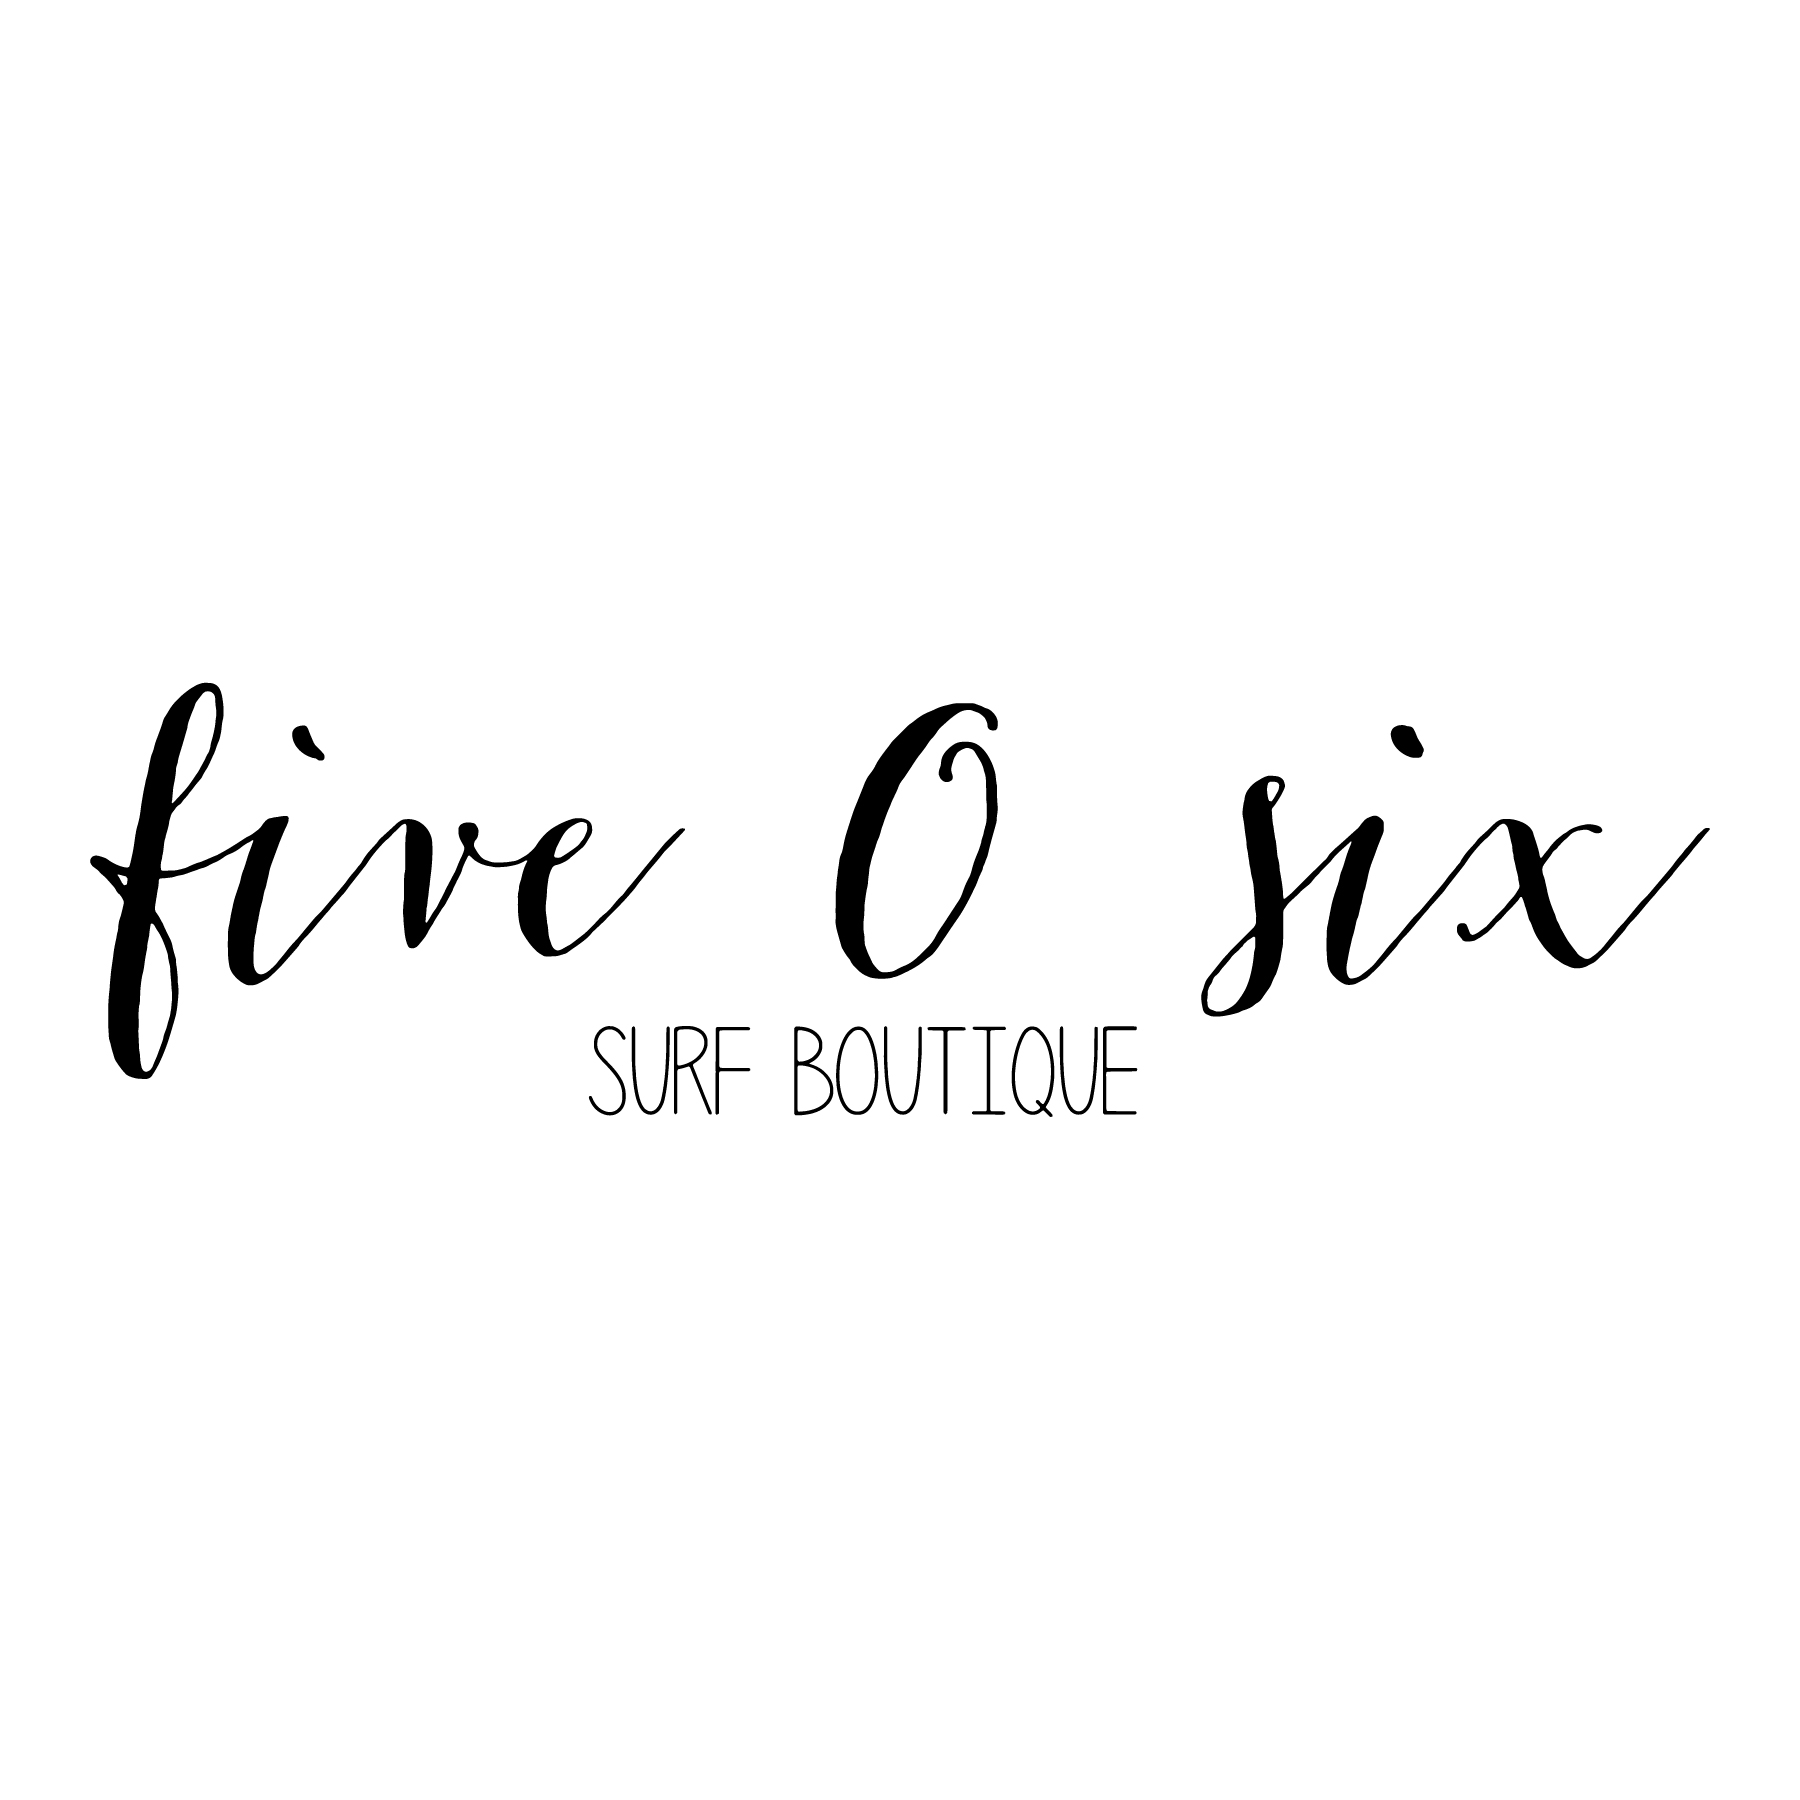 Five 0 Six Surf Boutique in New Jersey